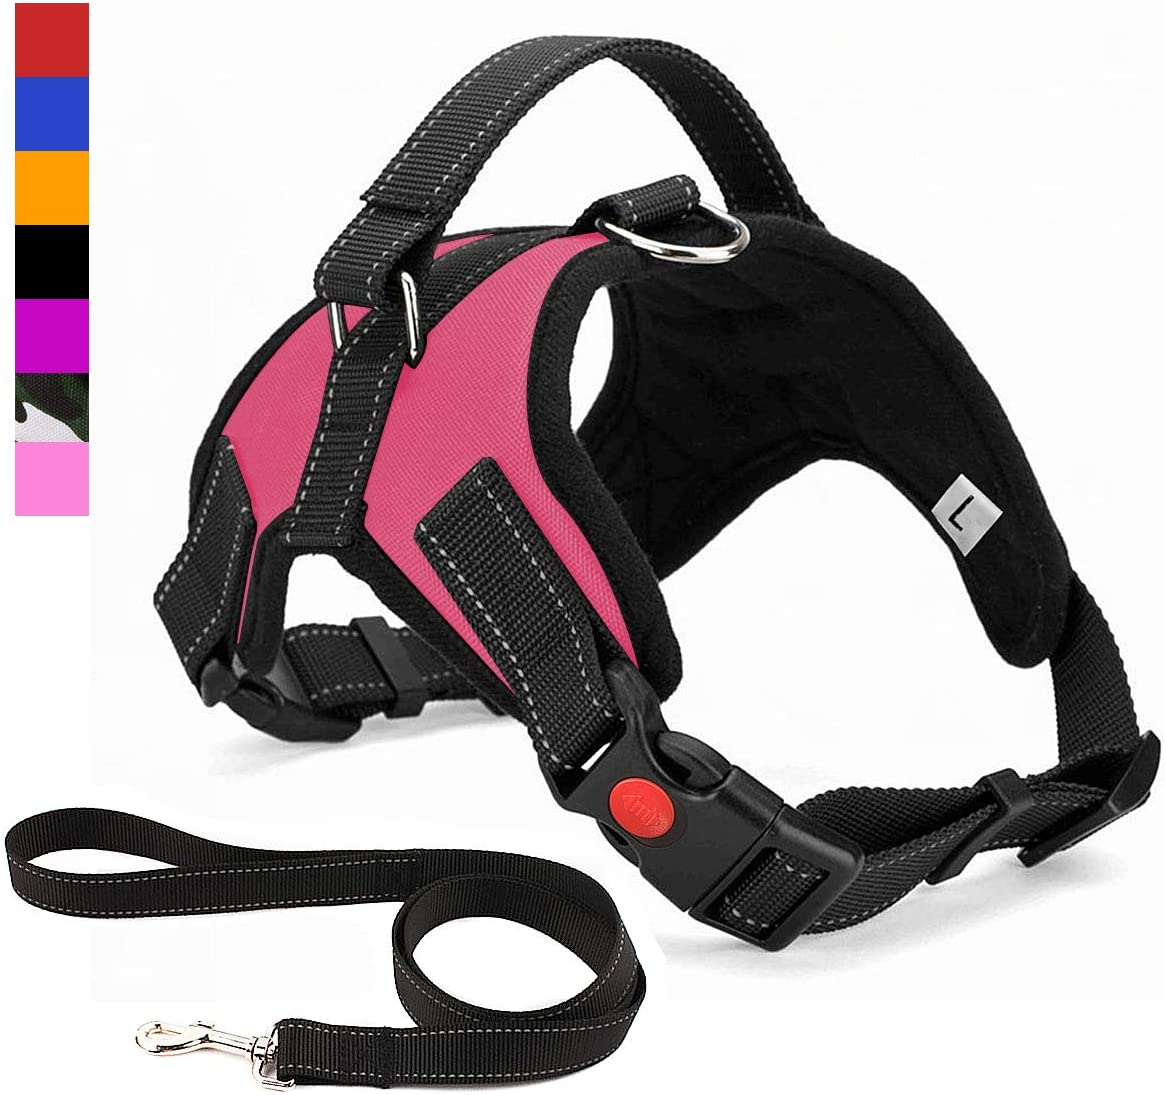 Breathable Adjustable Comfort Musonic No Pull Dog Harness for Small Medium Large Dog Best for Training Walking Free Leash Included